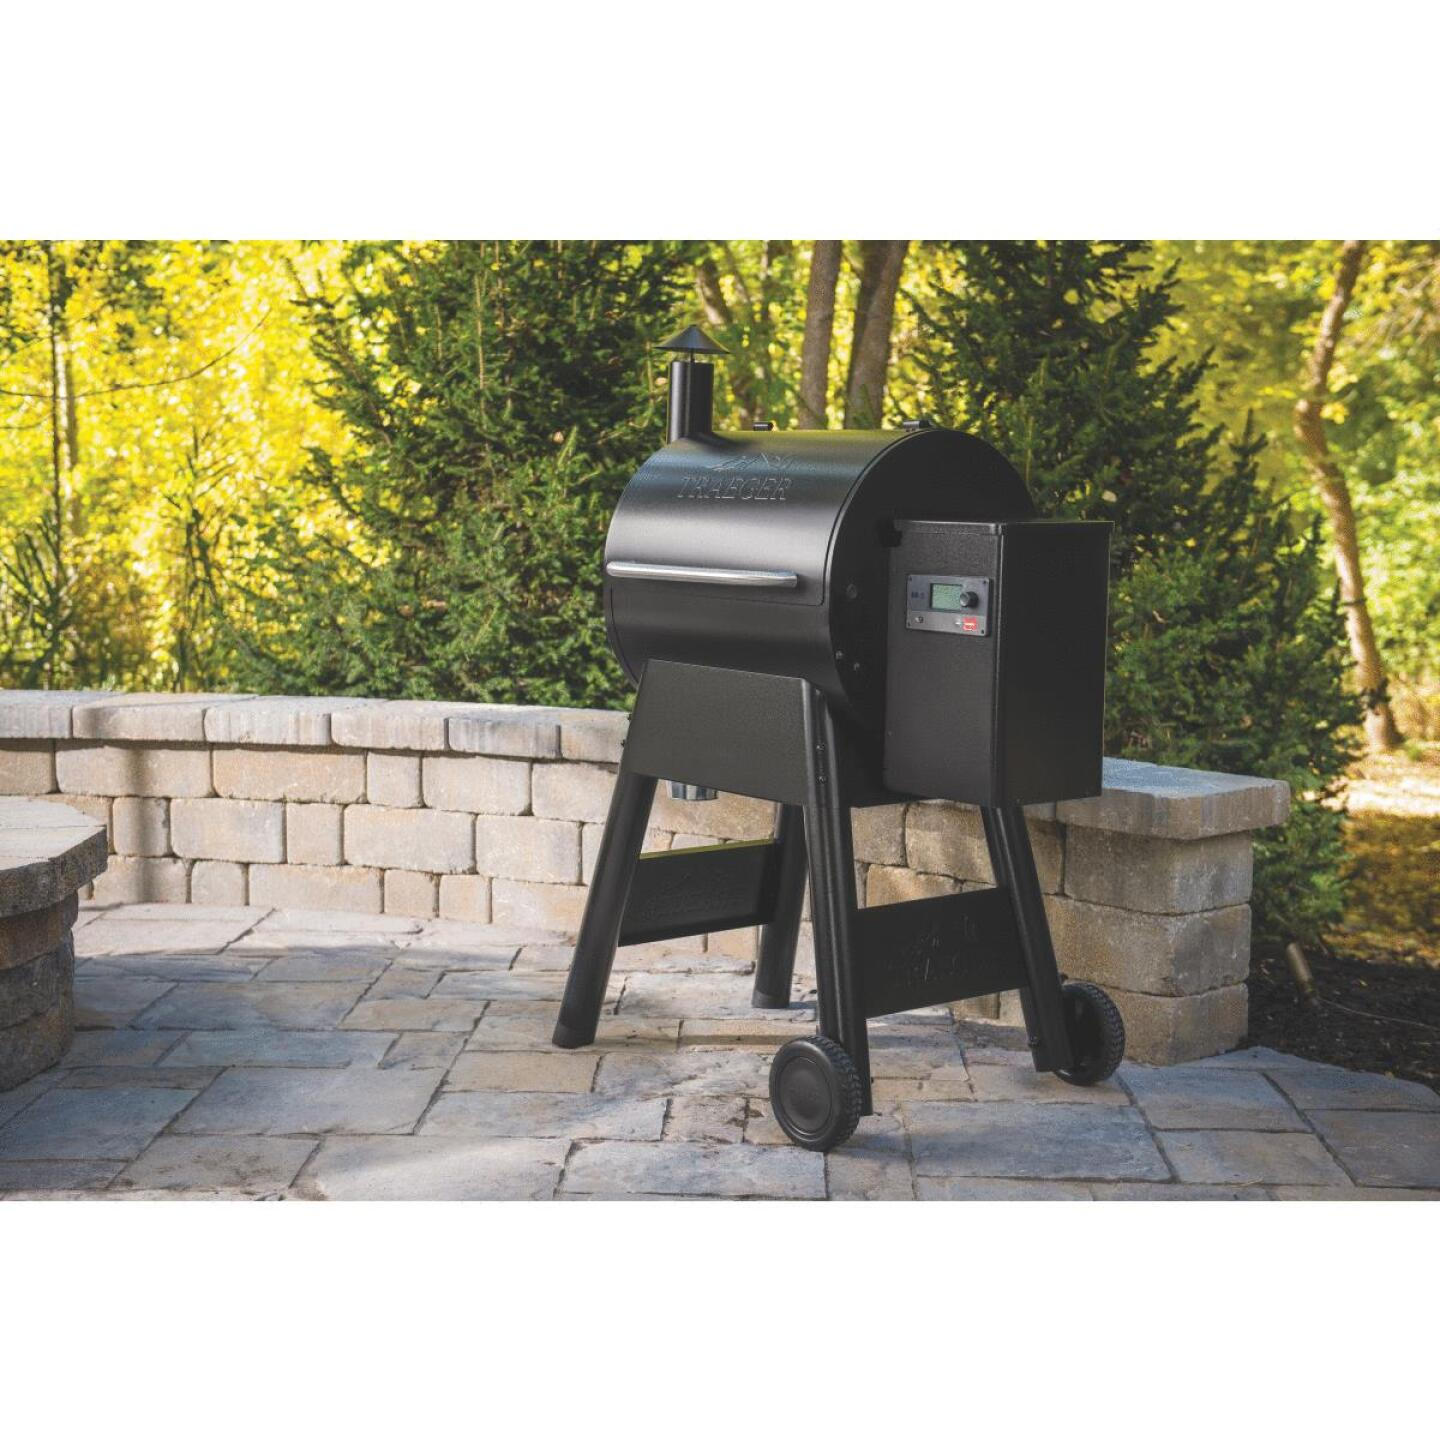 Traeger Pro 575 Black 36,000 BTU 572 Sq. In. Wood Pellet Grill Image 2